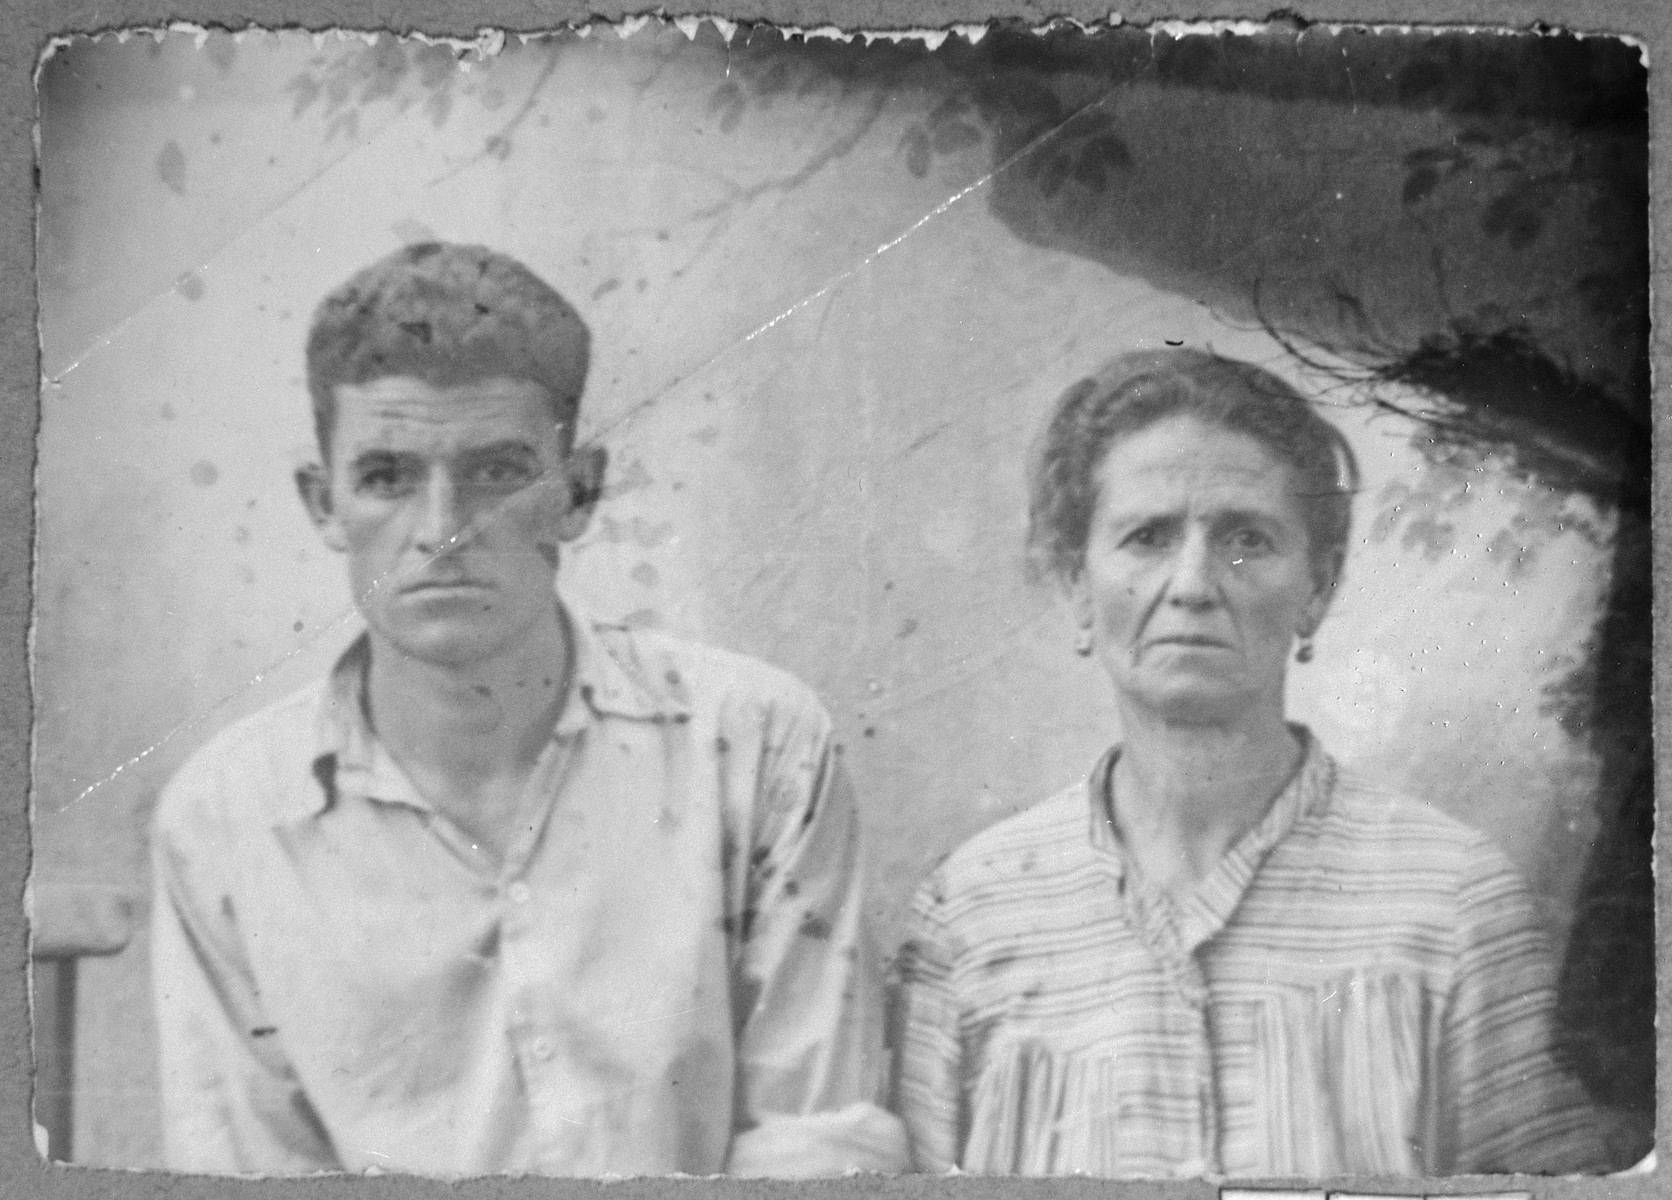 Portrait of Suncho Negri, wife of Daniel Negri, and David Negri, son of Daniel Negri.  Daniel was a student.  They lived at Avliya 13 in Bitola.